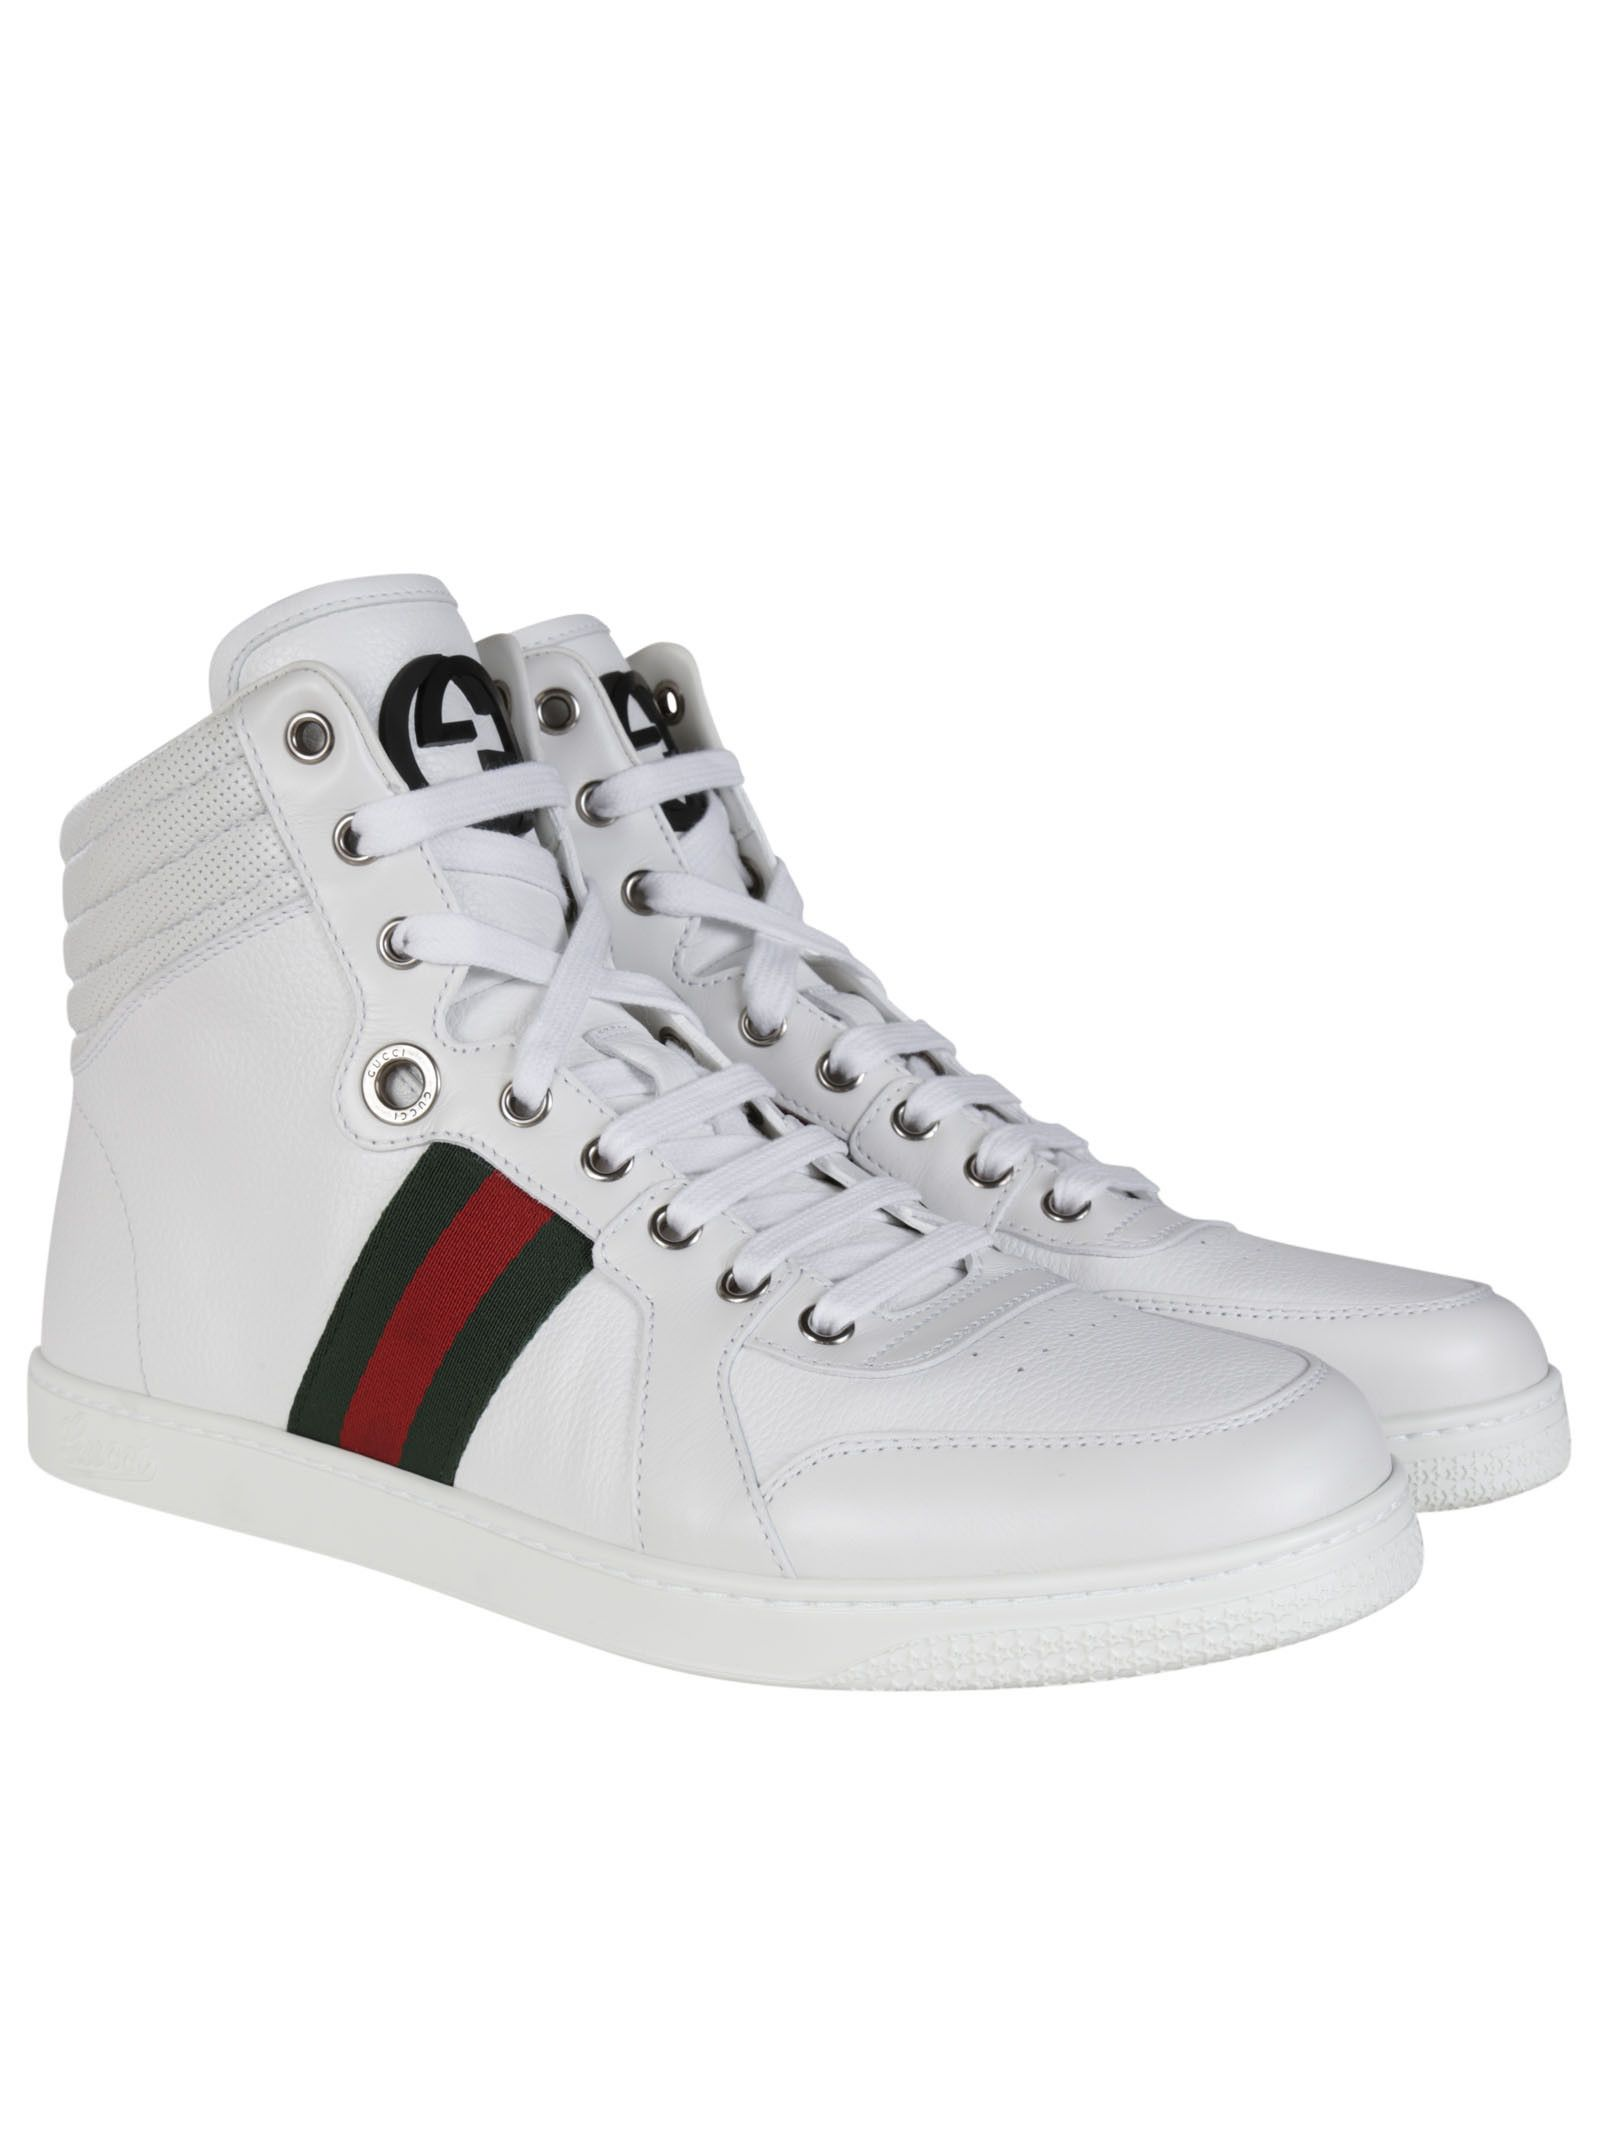 9b09e916a Gucci Guccissima Leather High-top Sneakers | JABROWN PARKS | Gucci ...